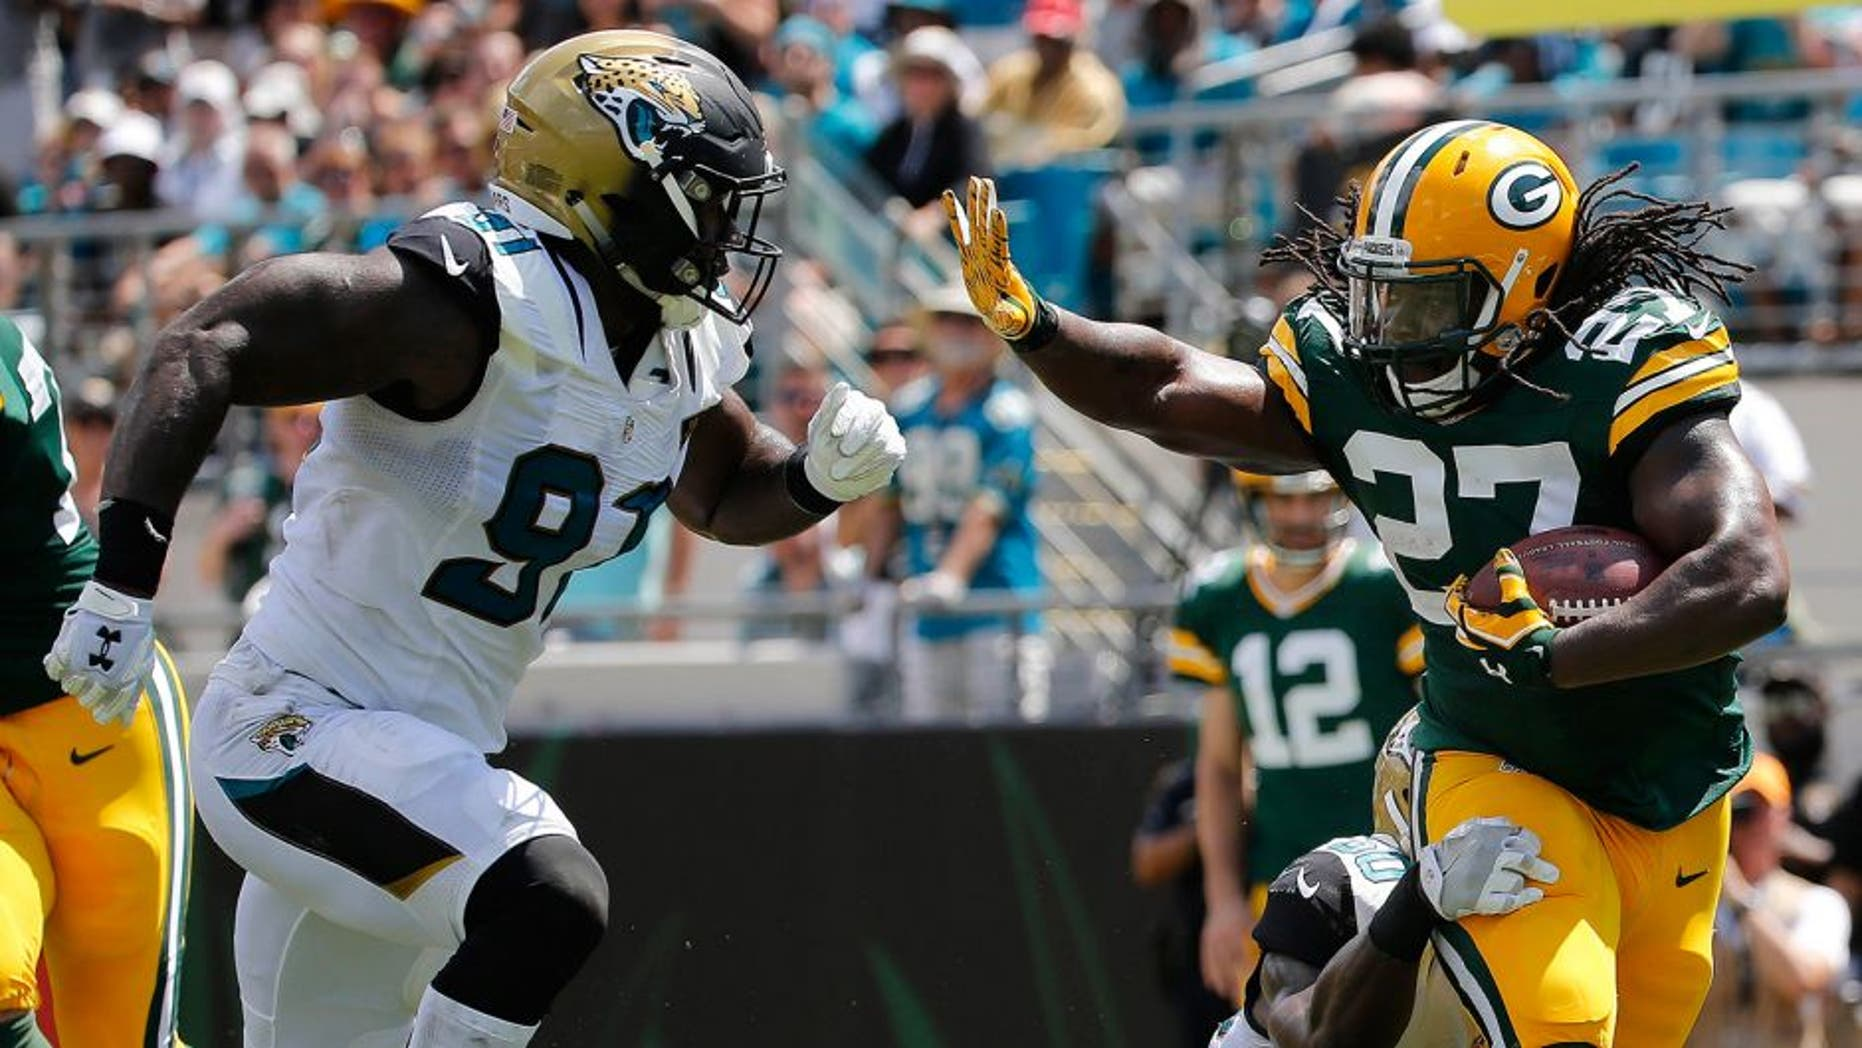 Sep 11, 2016; Jacksonville, FL, USA; Green Bay Packers running back Eddie Lacy (27) runs with he ball as Jacksonville Jaguars outside linebacker Telvin Smith (50) and defensive end Yannick Ngakoue (91) defends during the first half at EverBank Field. Mandatory Credit: Kim Klement-USA TODAY Sports